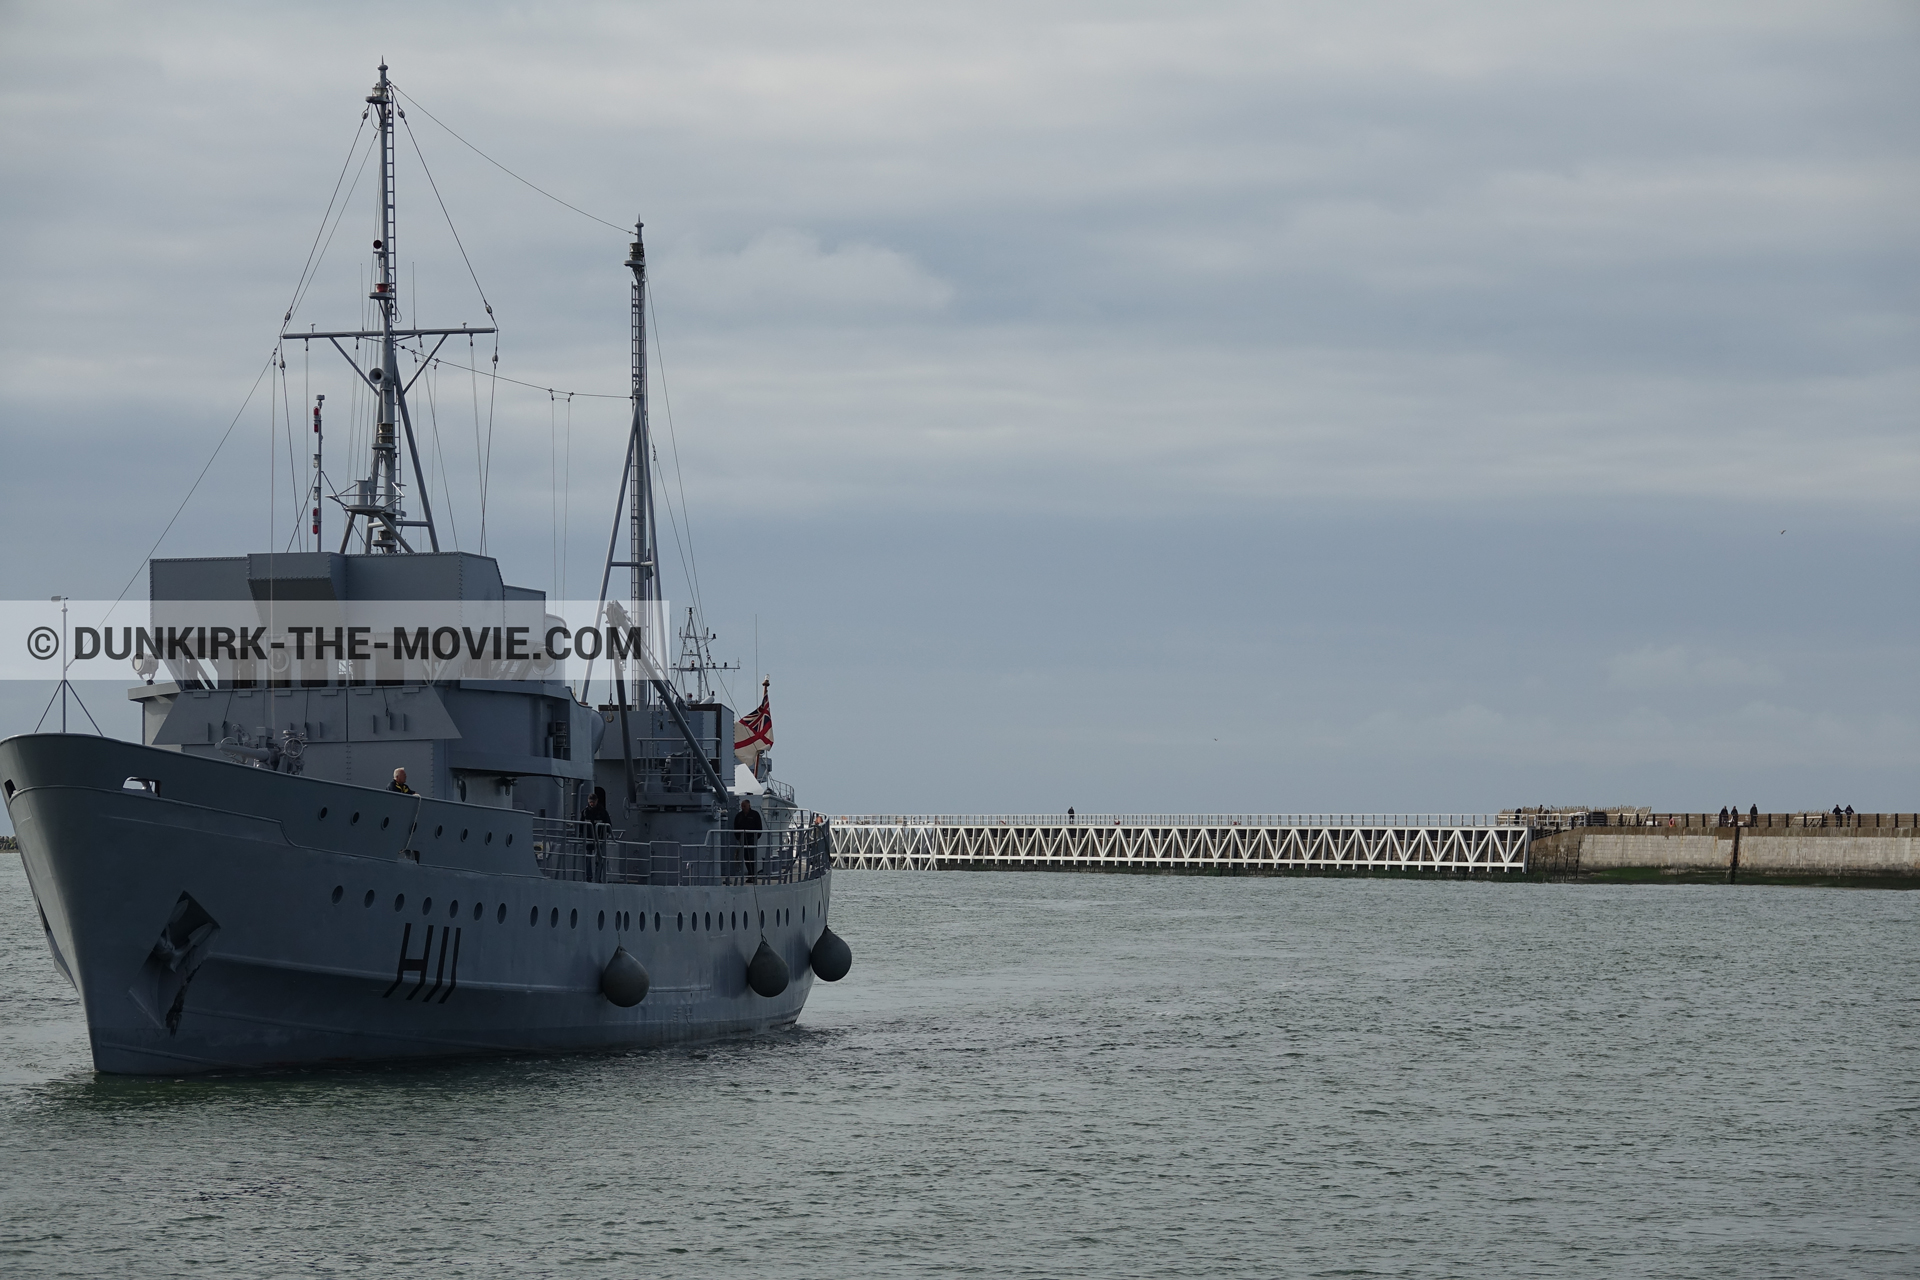 Picture with cloudy sky, H11 - MLV Castor, EST pier, calm sea,  from behind the scene of the Dunkirk movie by Nolan